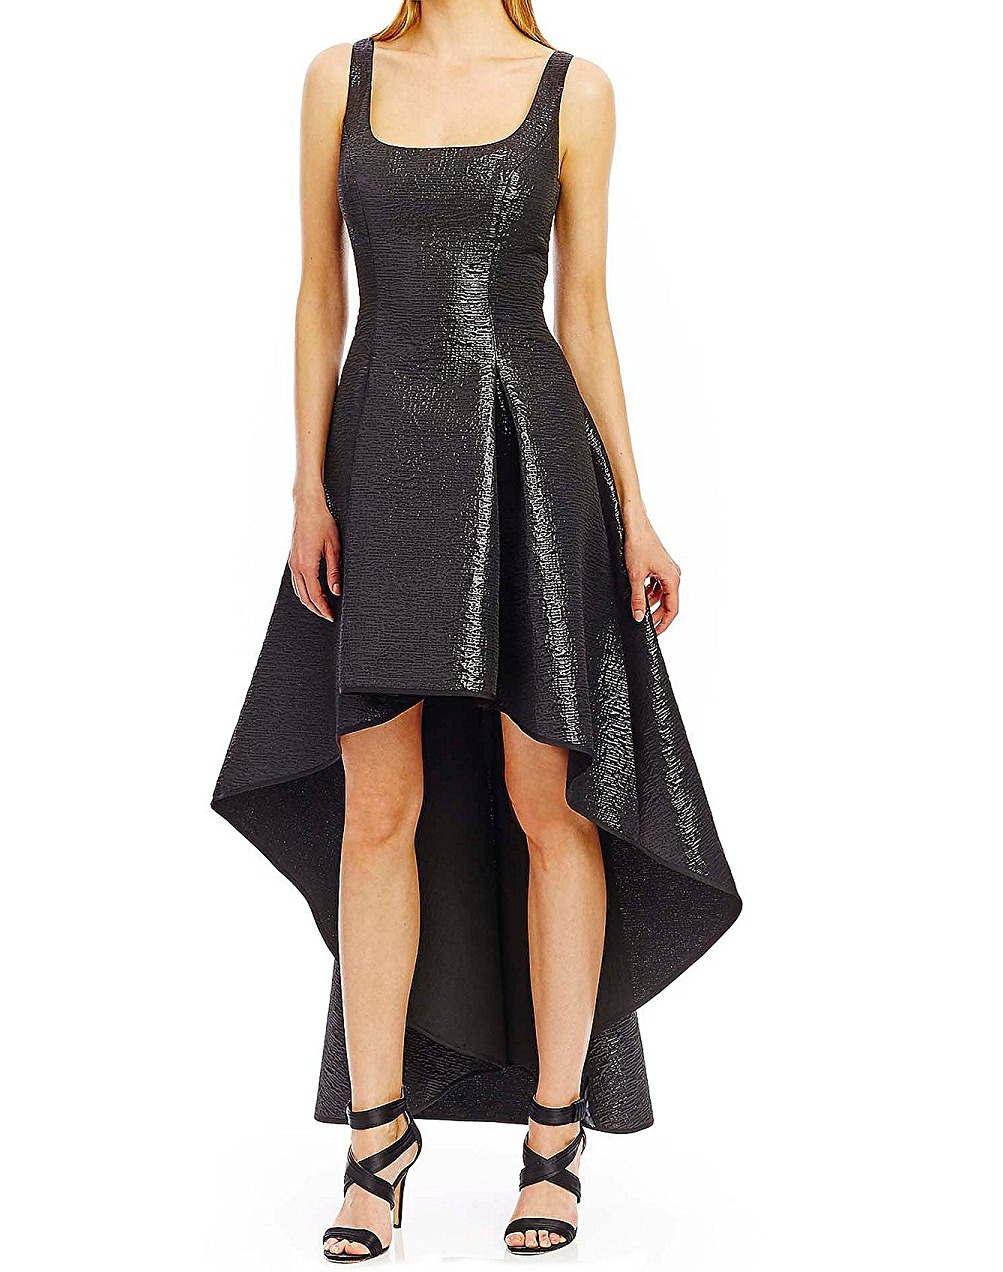 Nicole Miller NEW Black Women\'s Size 12 Gown High-Low Textured Dress ...